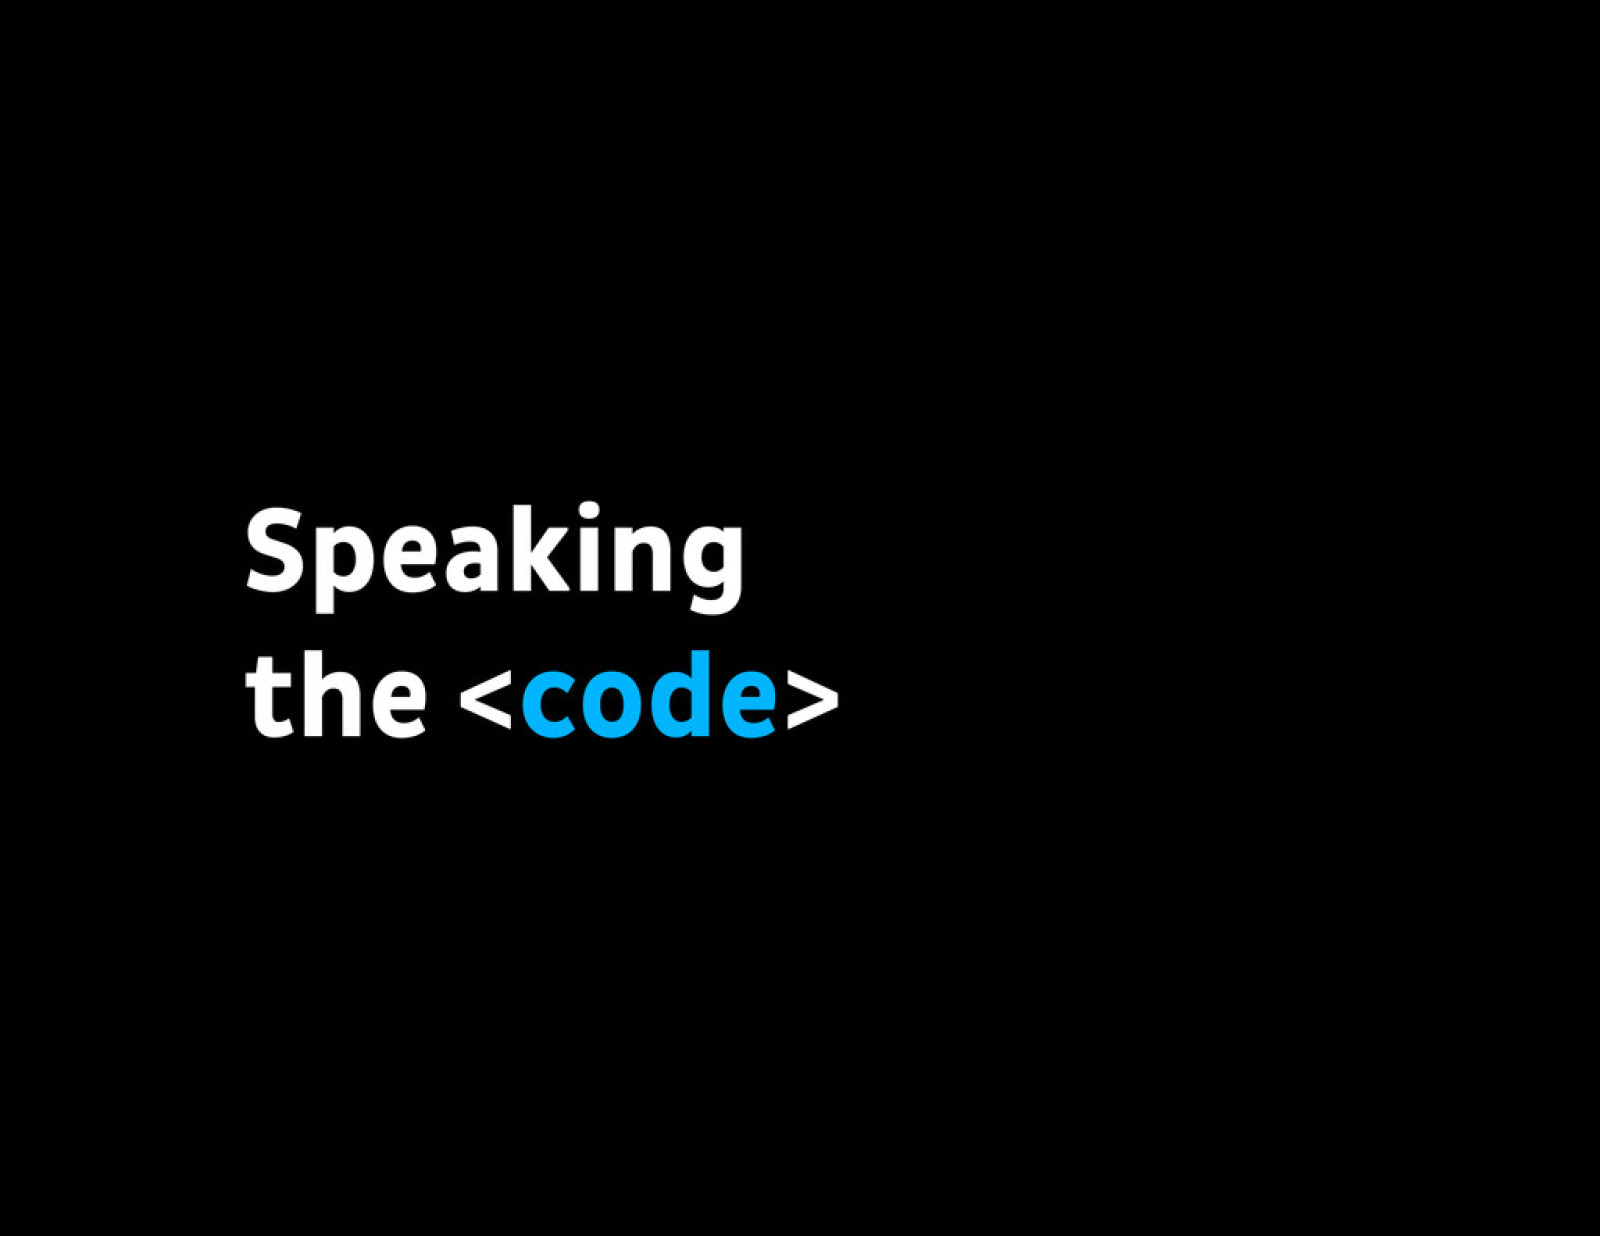 Speaking the Code